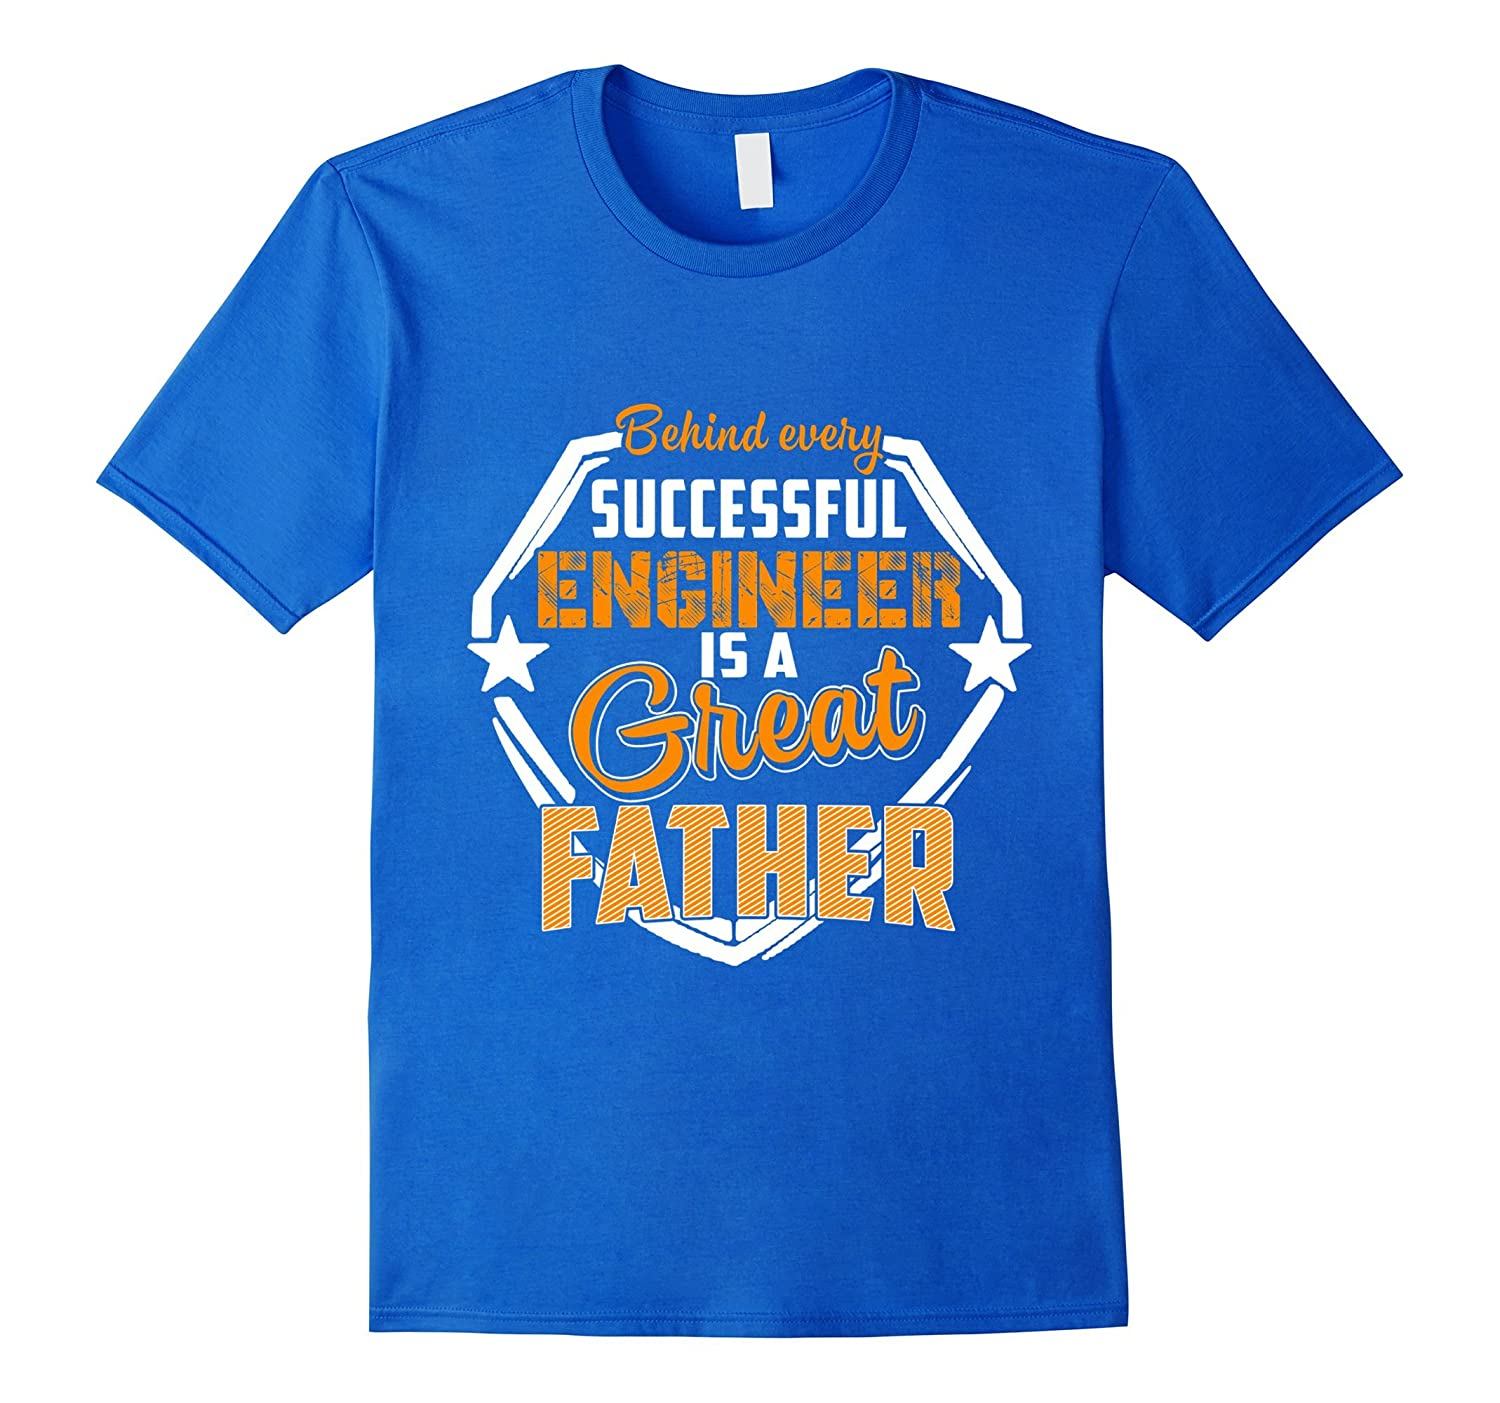 Behind Successful Engineer Great Dad Shirt for Fathers Day-RT